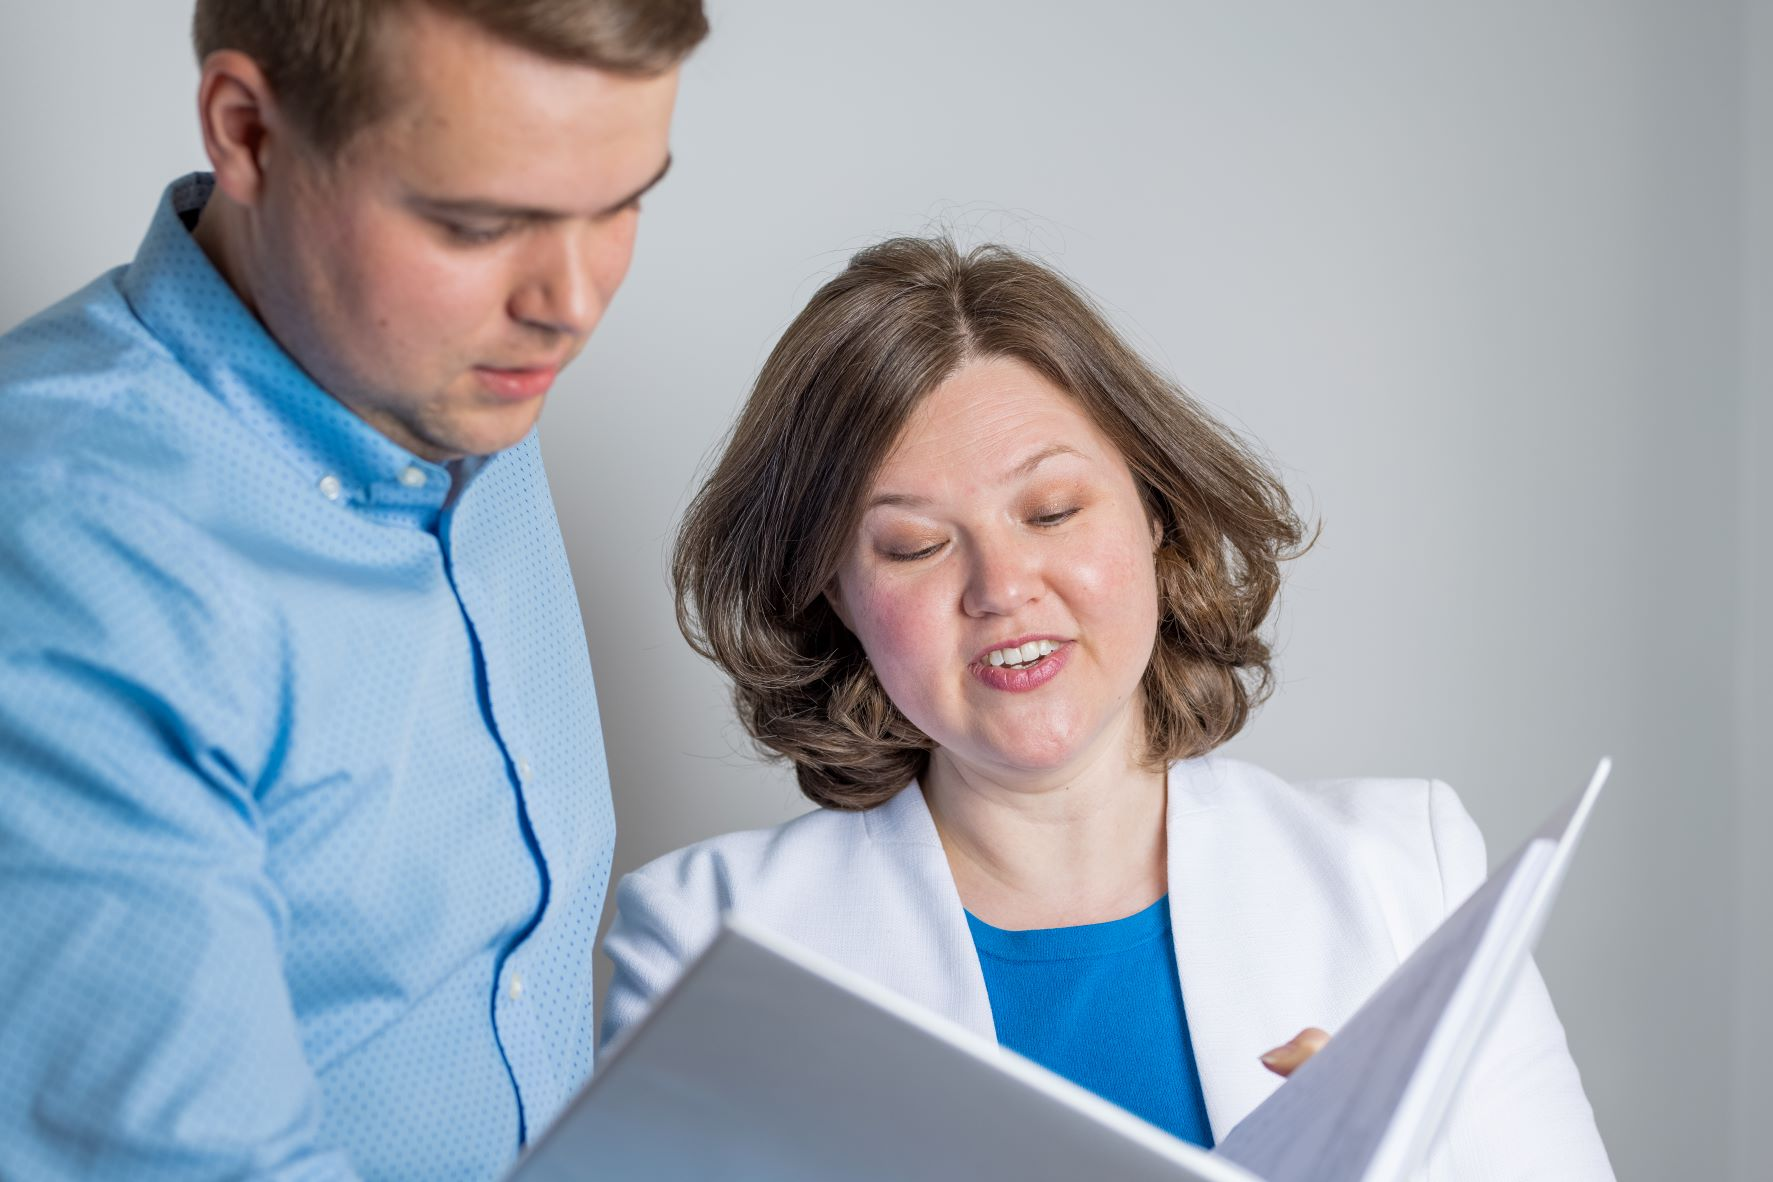 Standard Exclusion in Pharmacy Benefits